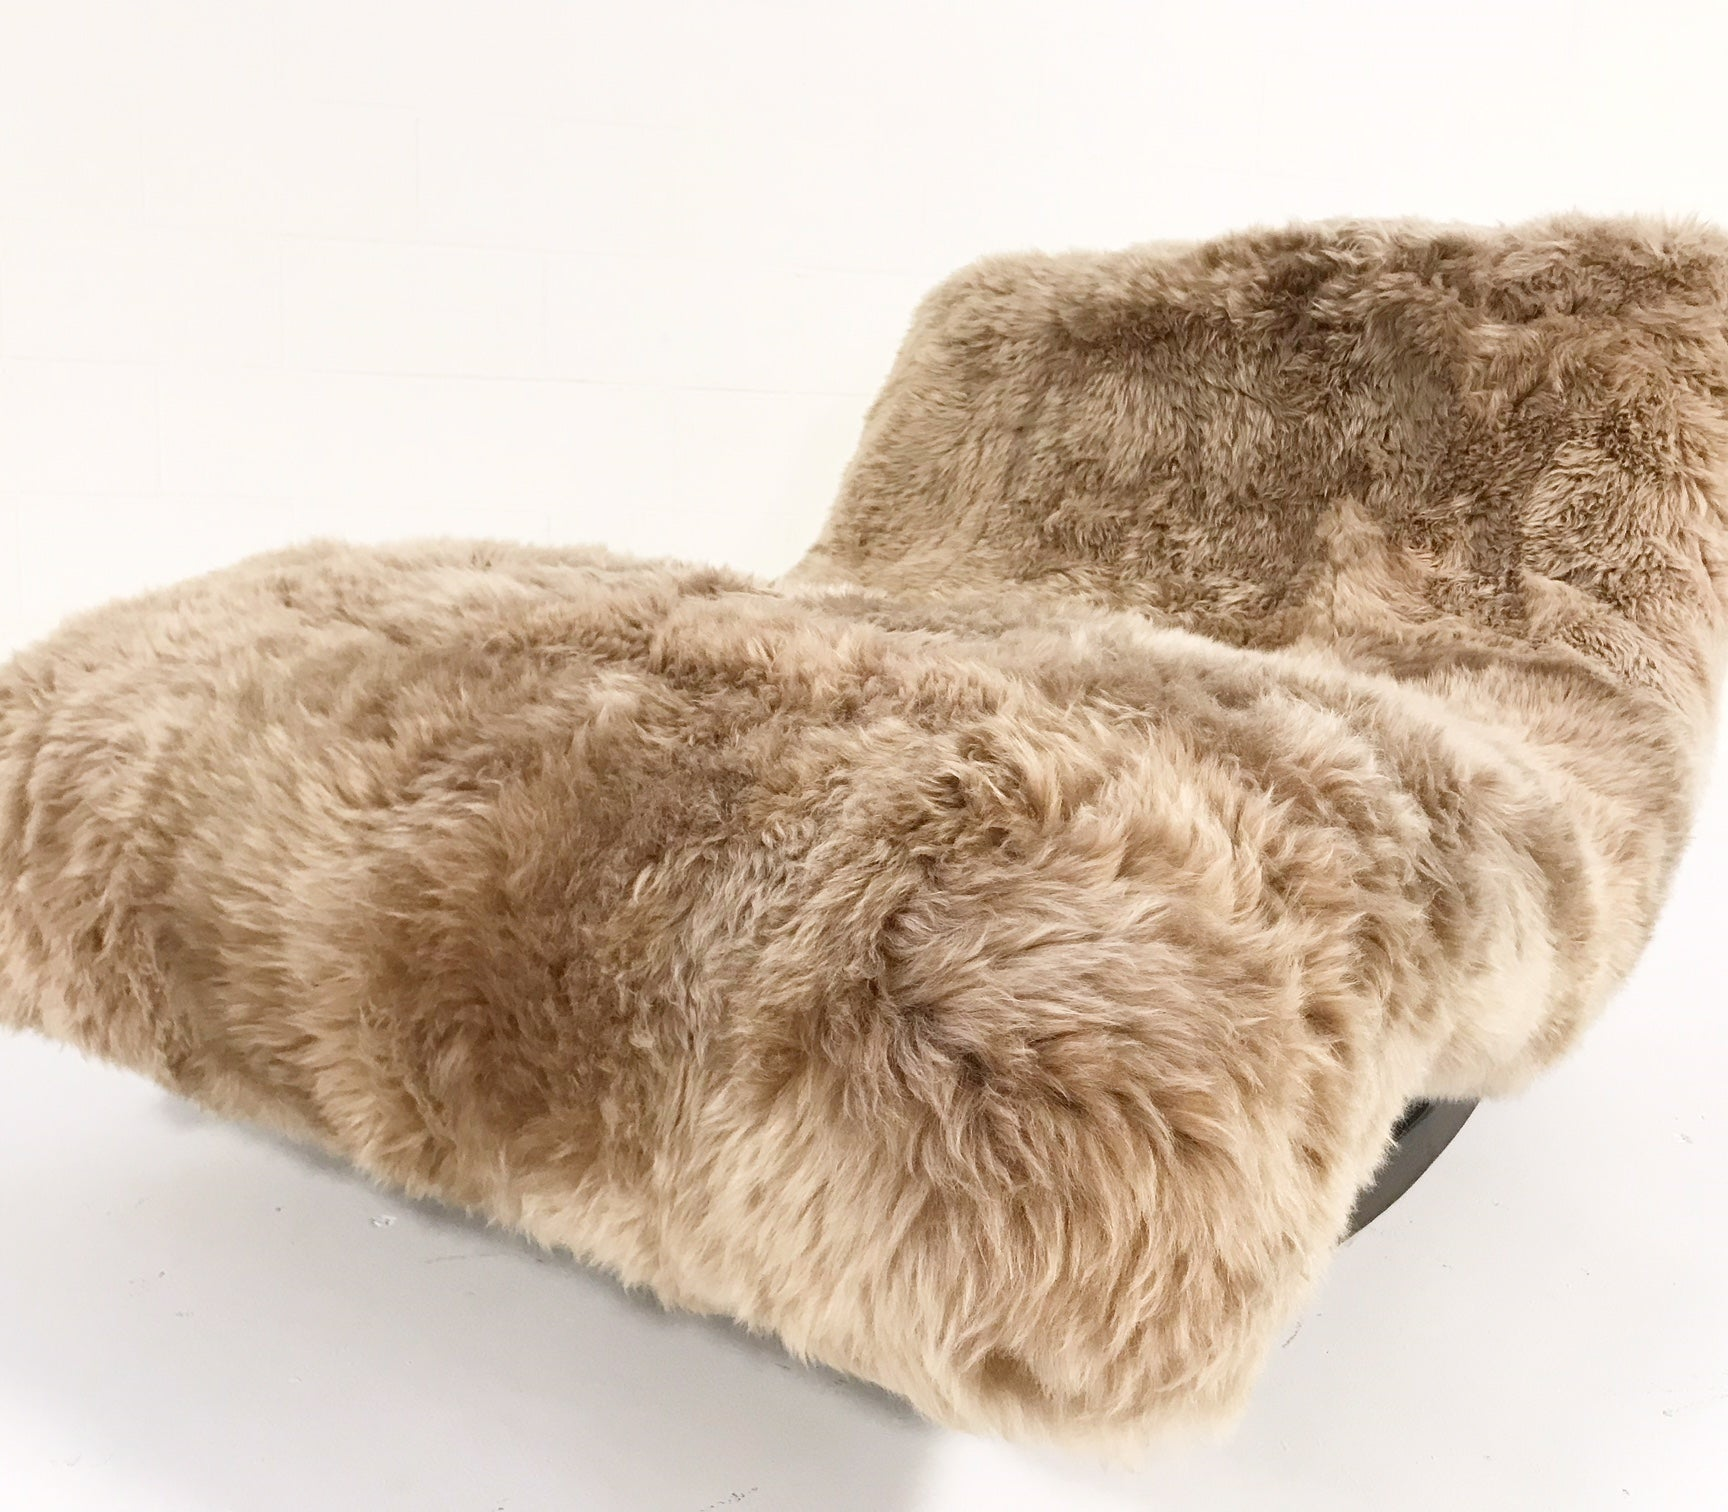 Rocking Wave Chaise Lounge in New Zealand Sheepskin - FORSYTH